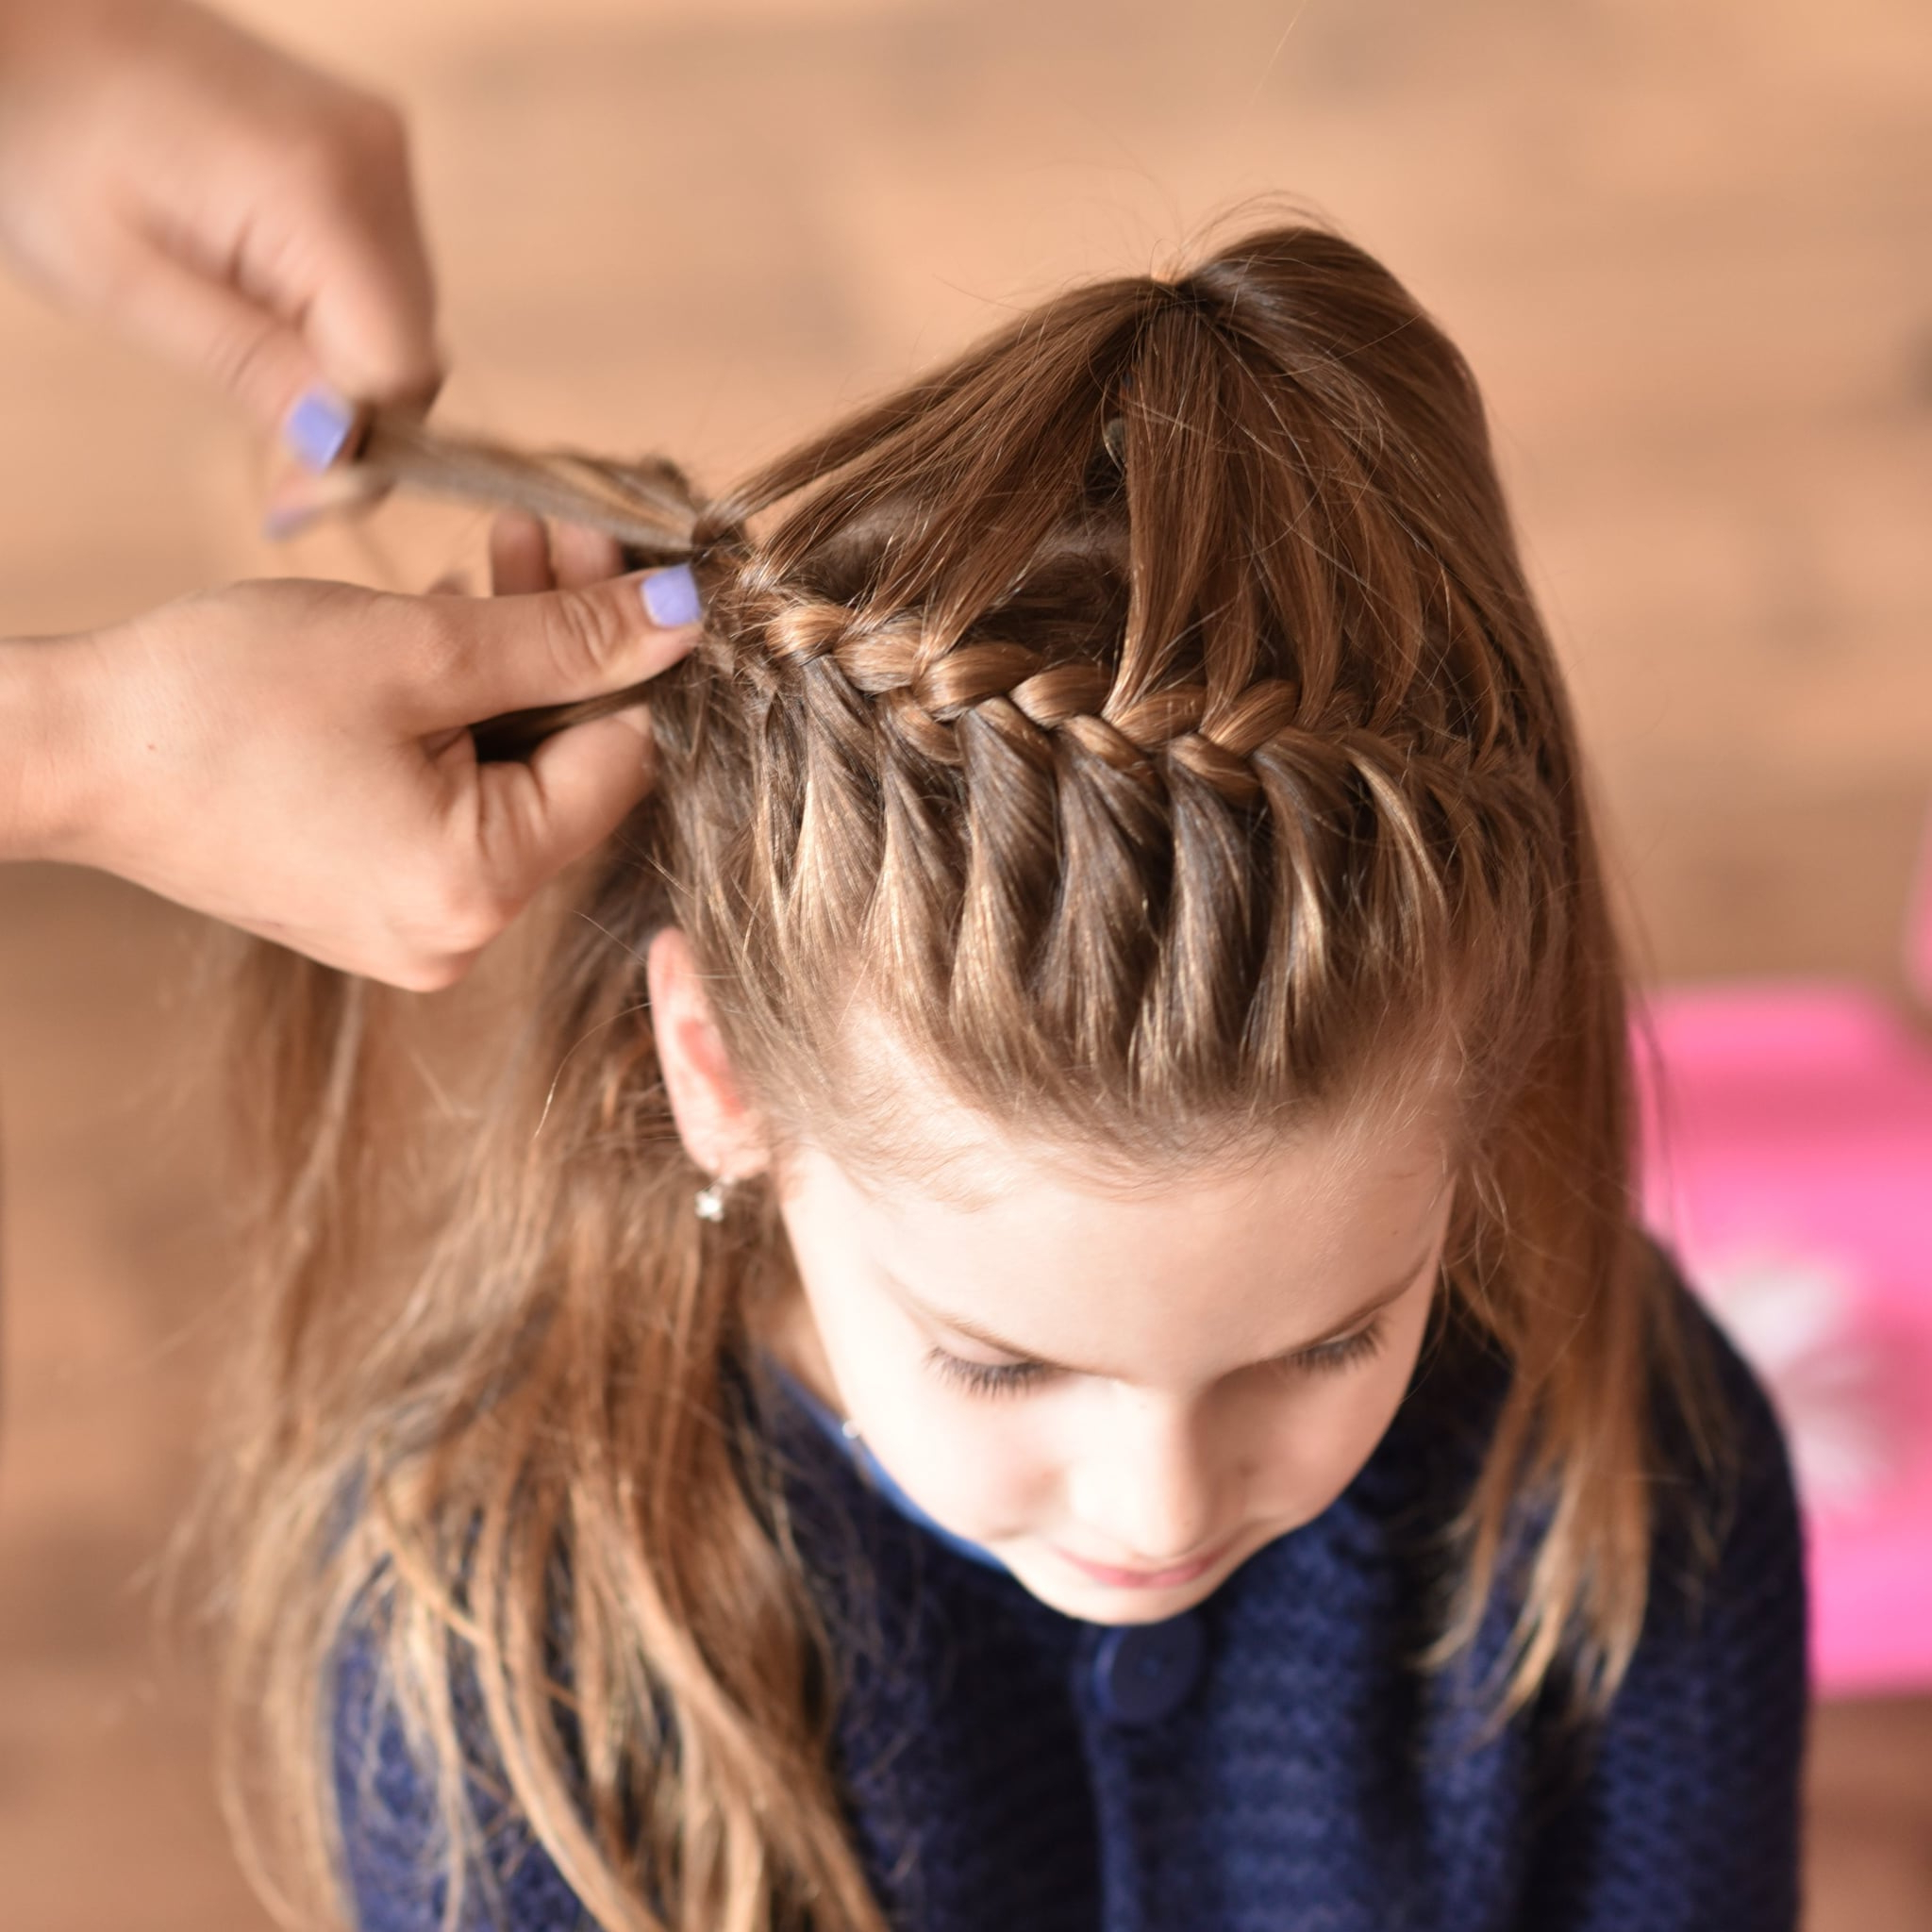 Fashionable Asymmetrical French Braided Hairstyles For Easy Hairstyles For Girls (View 13 of 20)